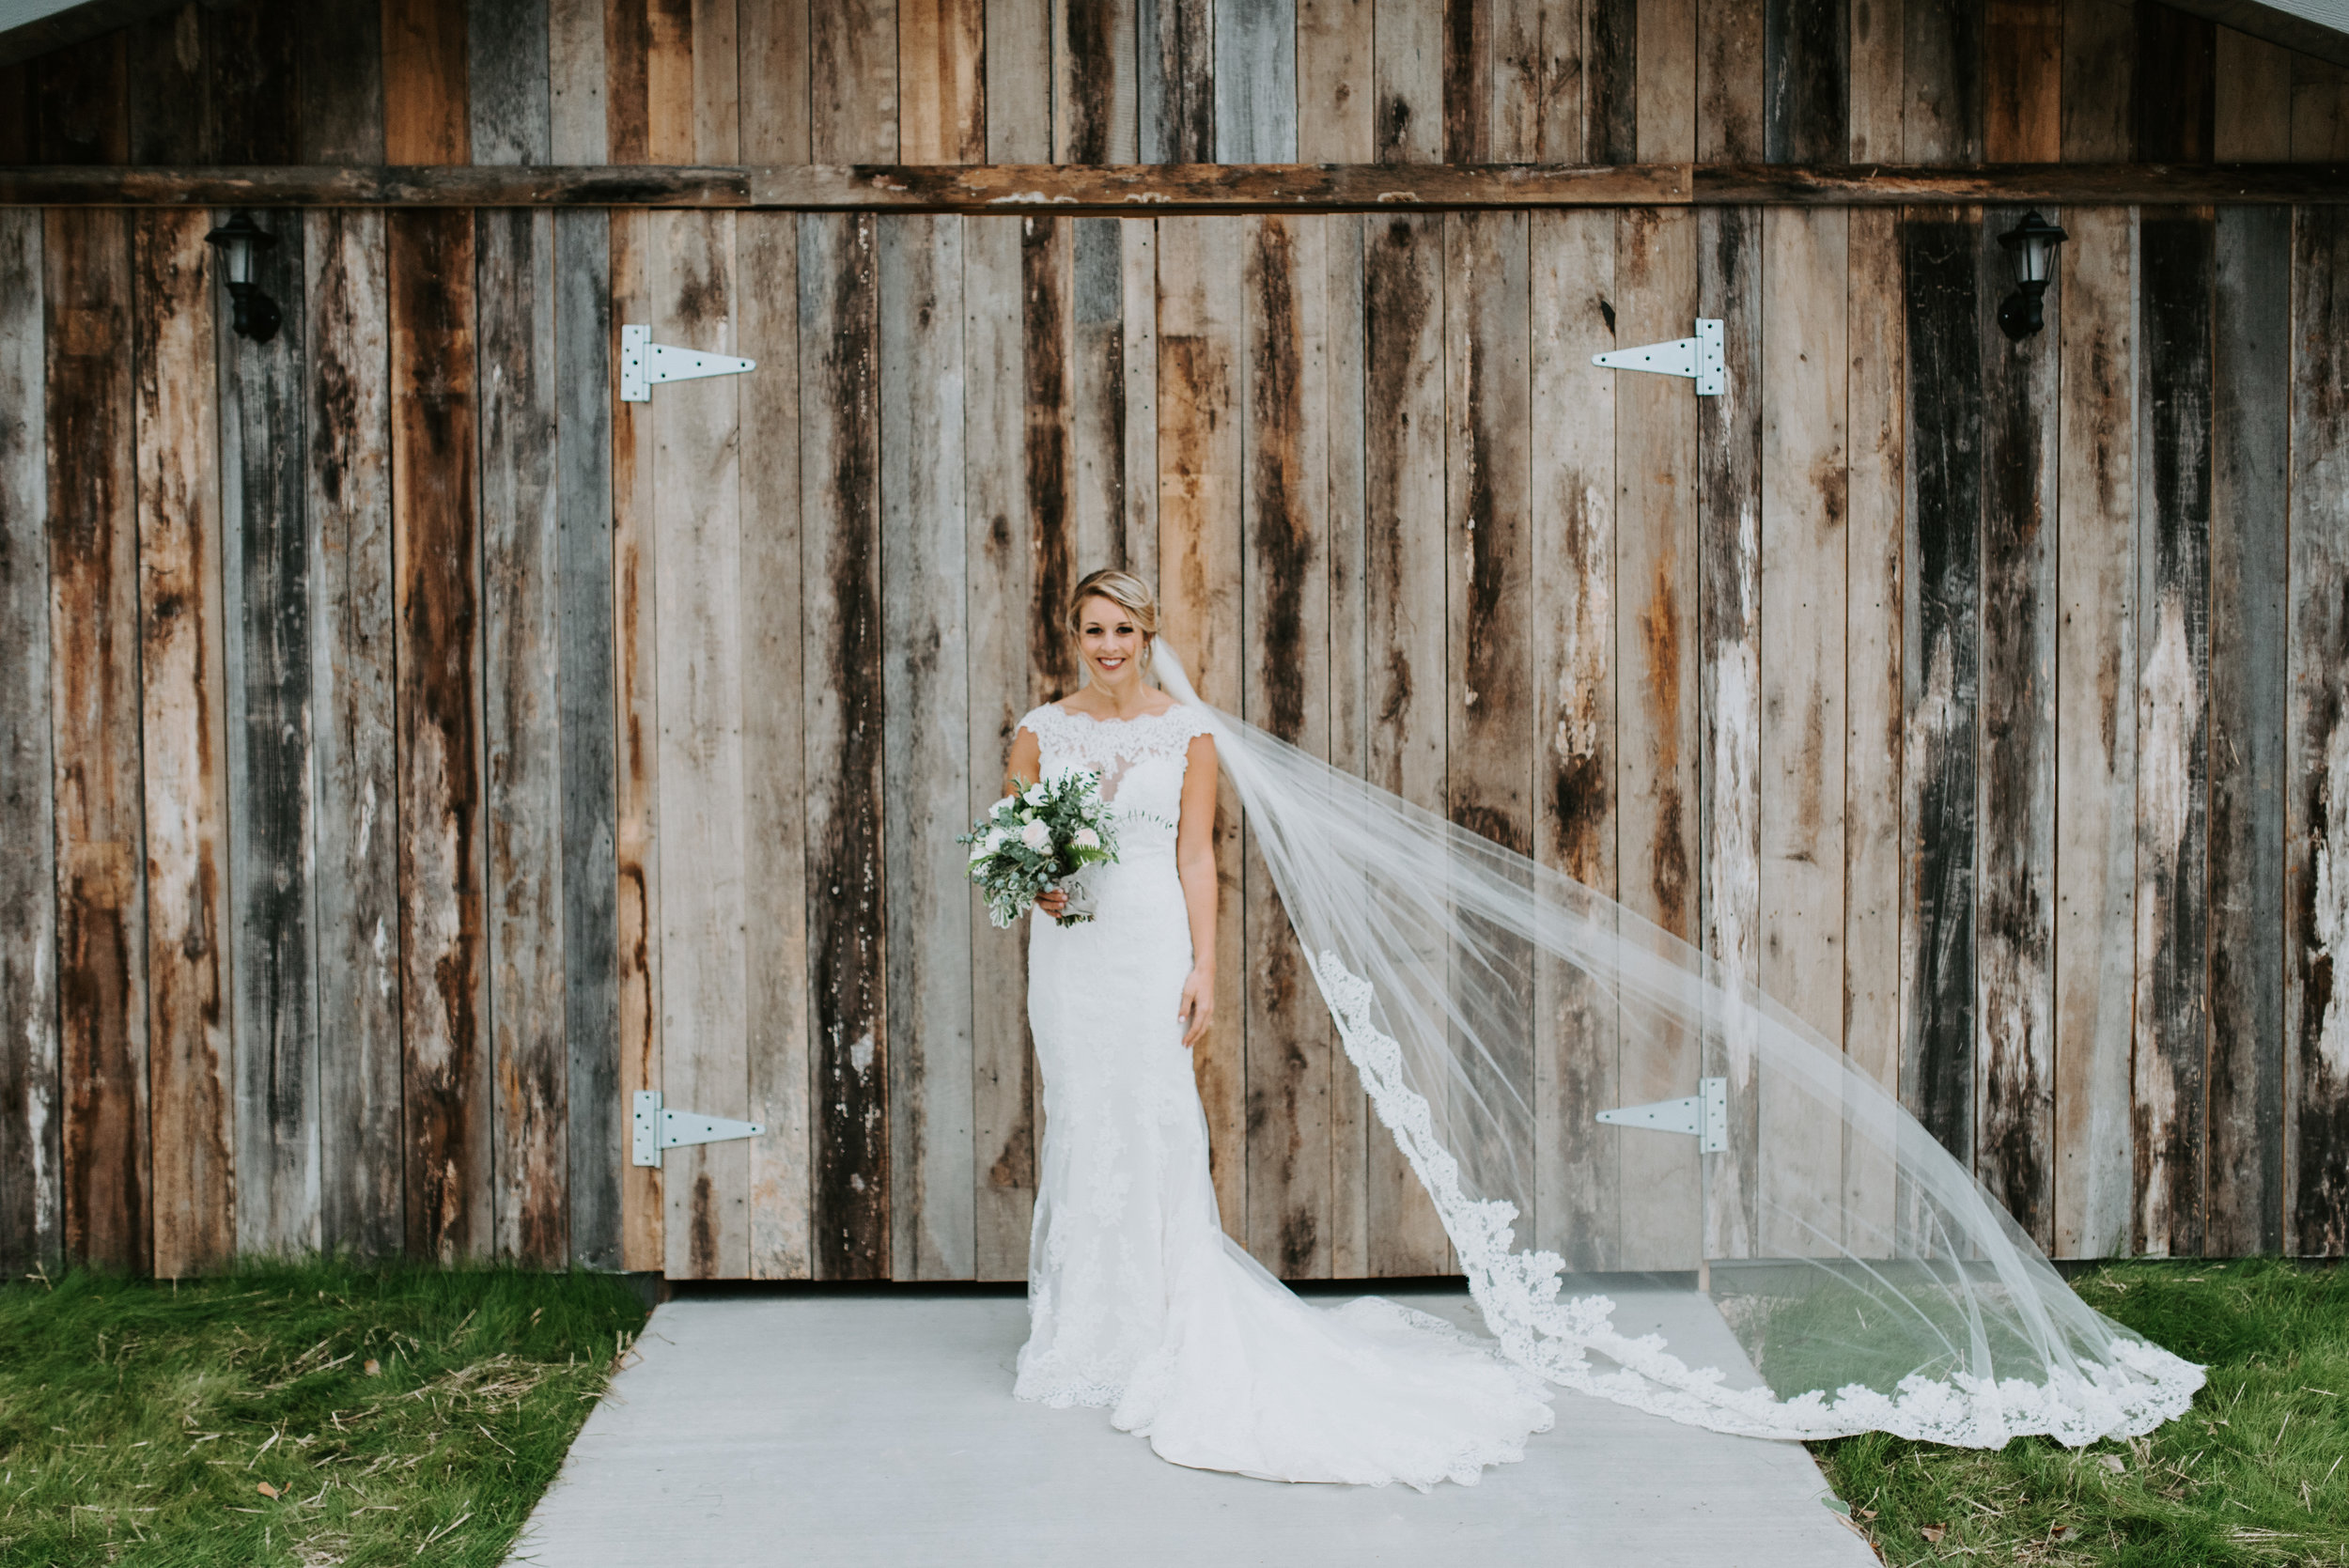 veil blowing in the wind distressed wood barn